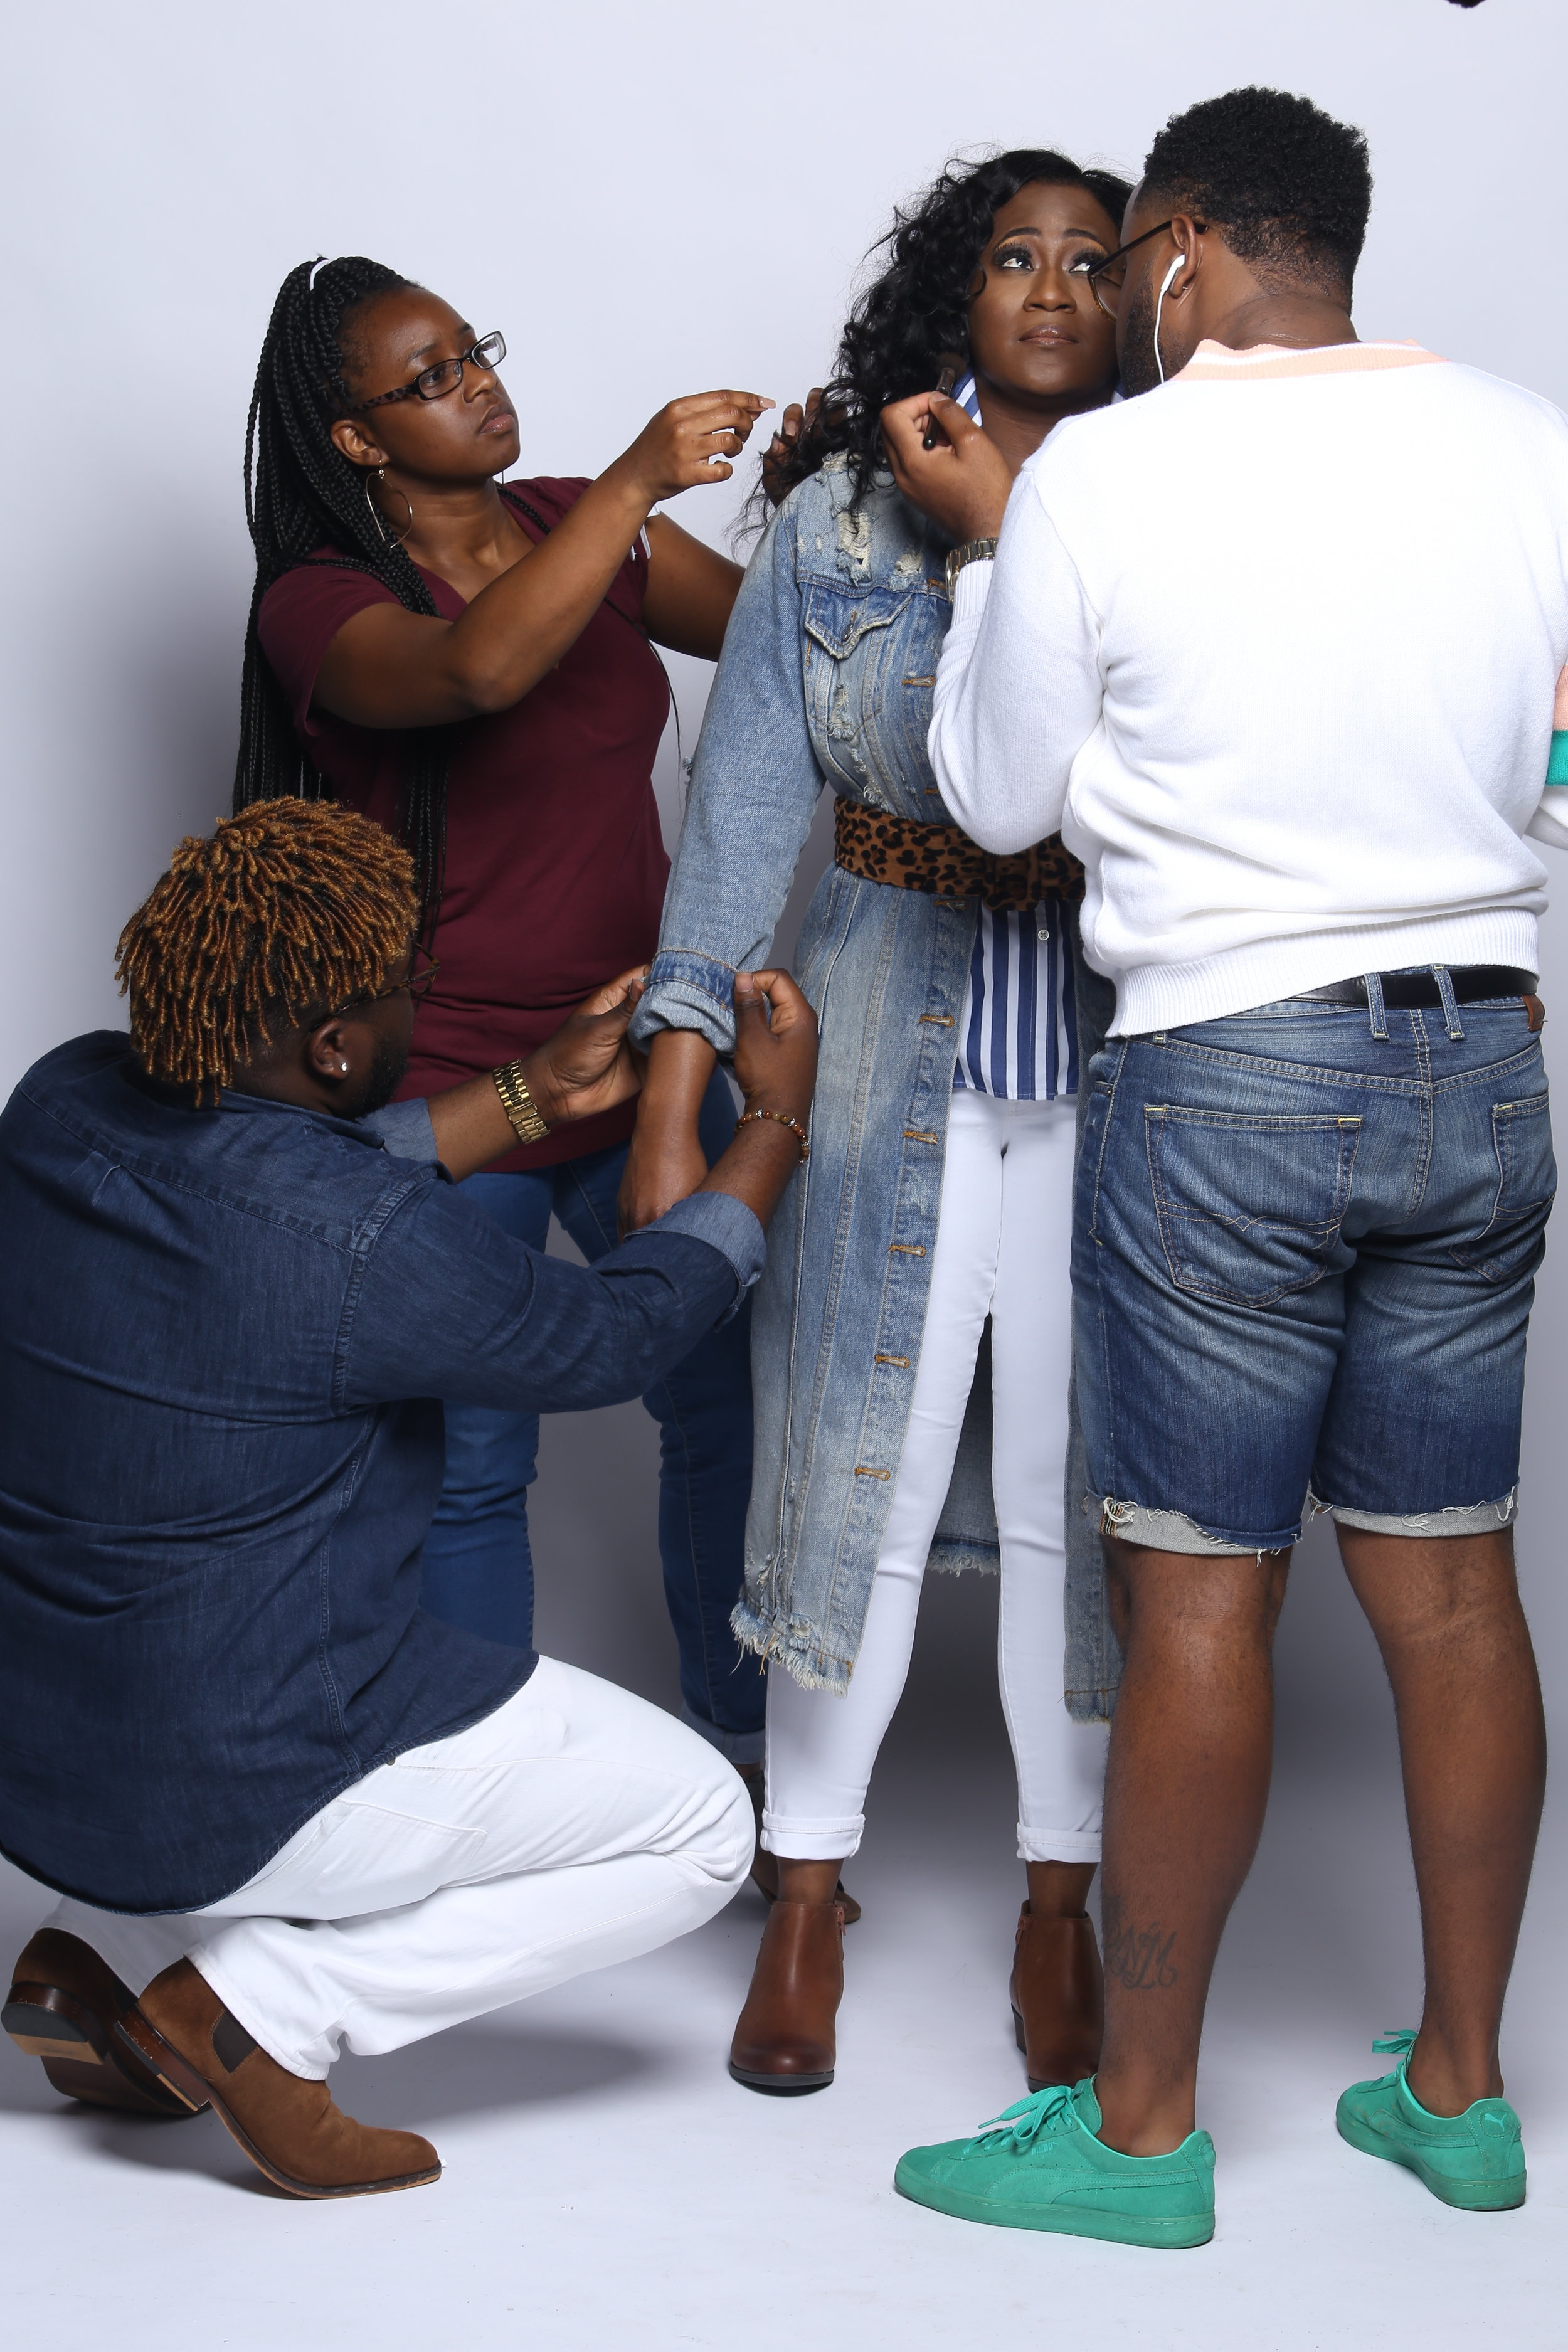 Shoot Service fee $200 - The work doesn't stop at putting the outfit together. During a photoshoot there is a lot of preparation that goes on before, during, and after. This fee is automatically added for photoshoot sessions.